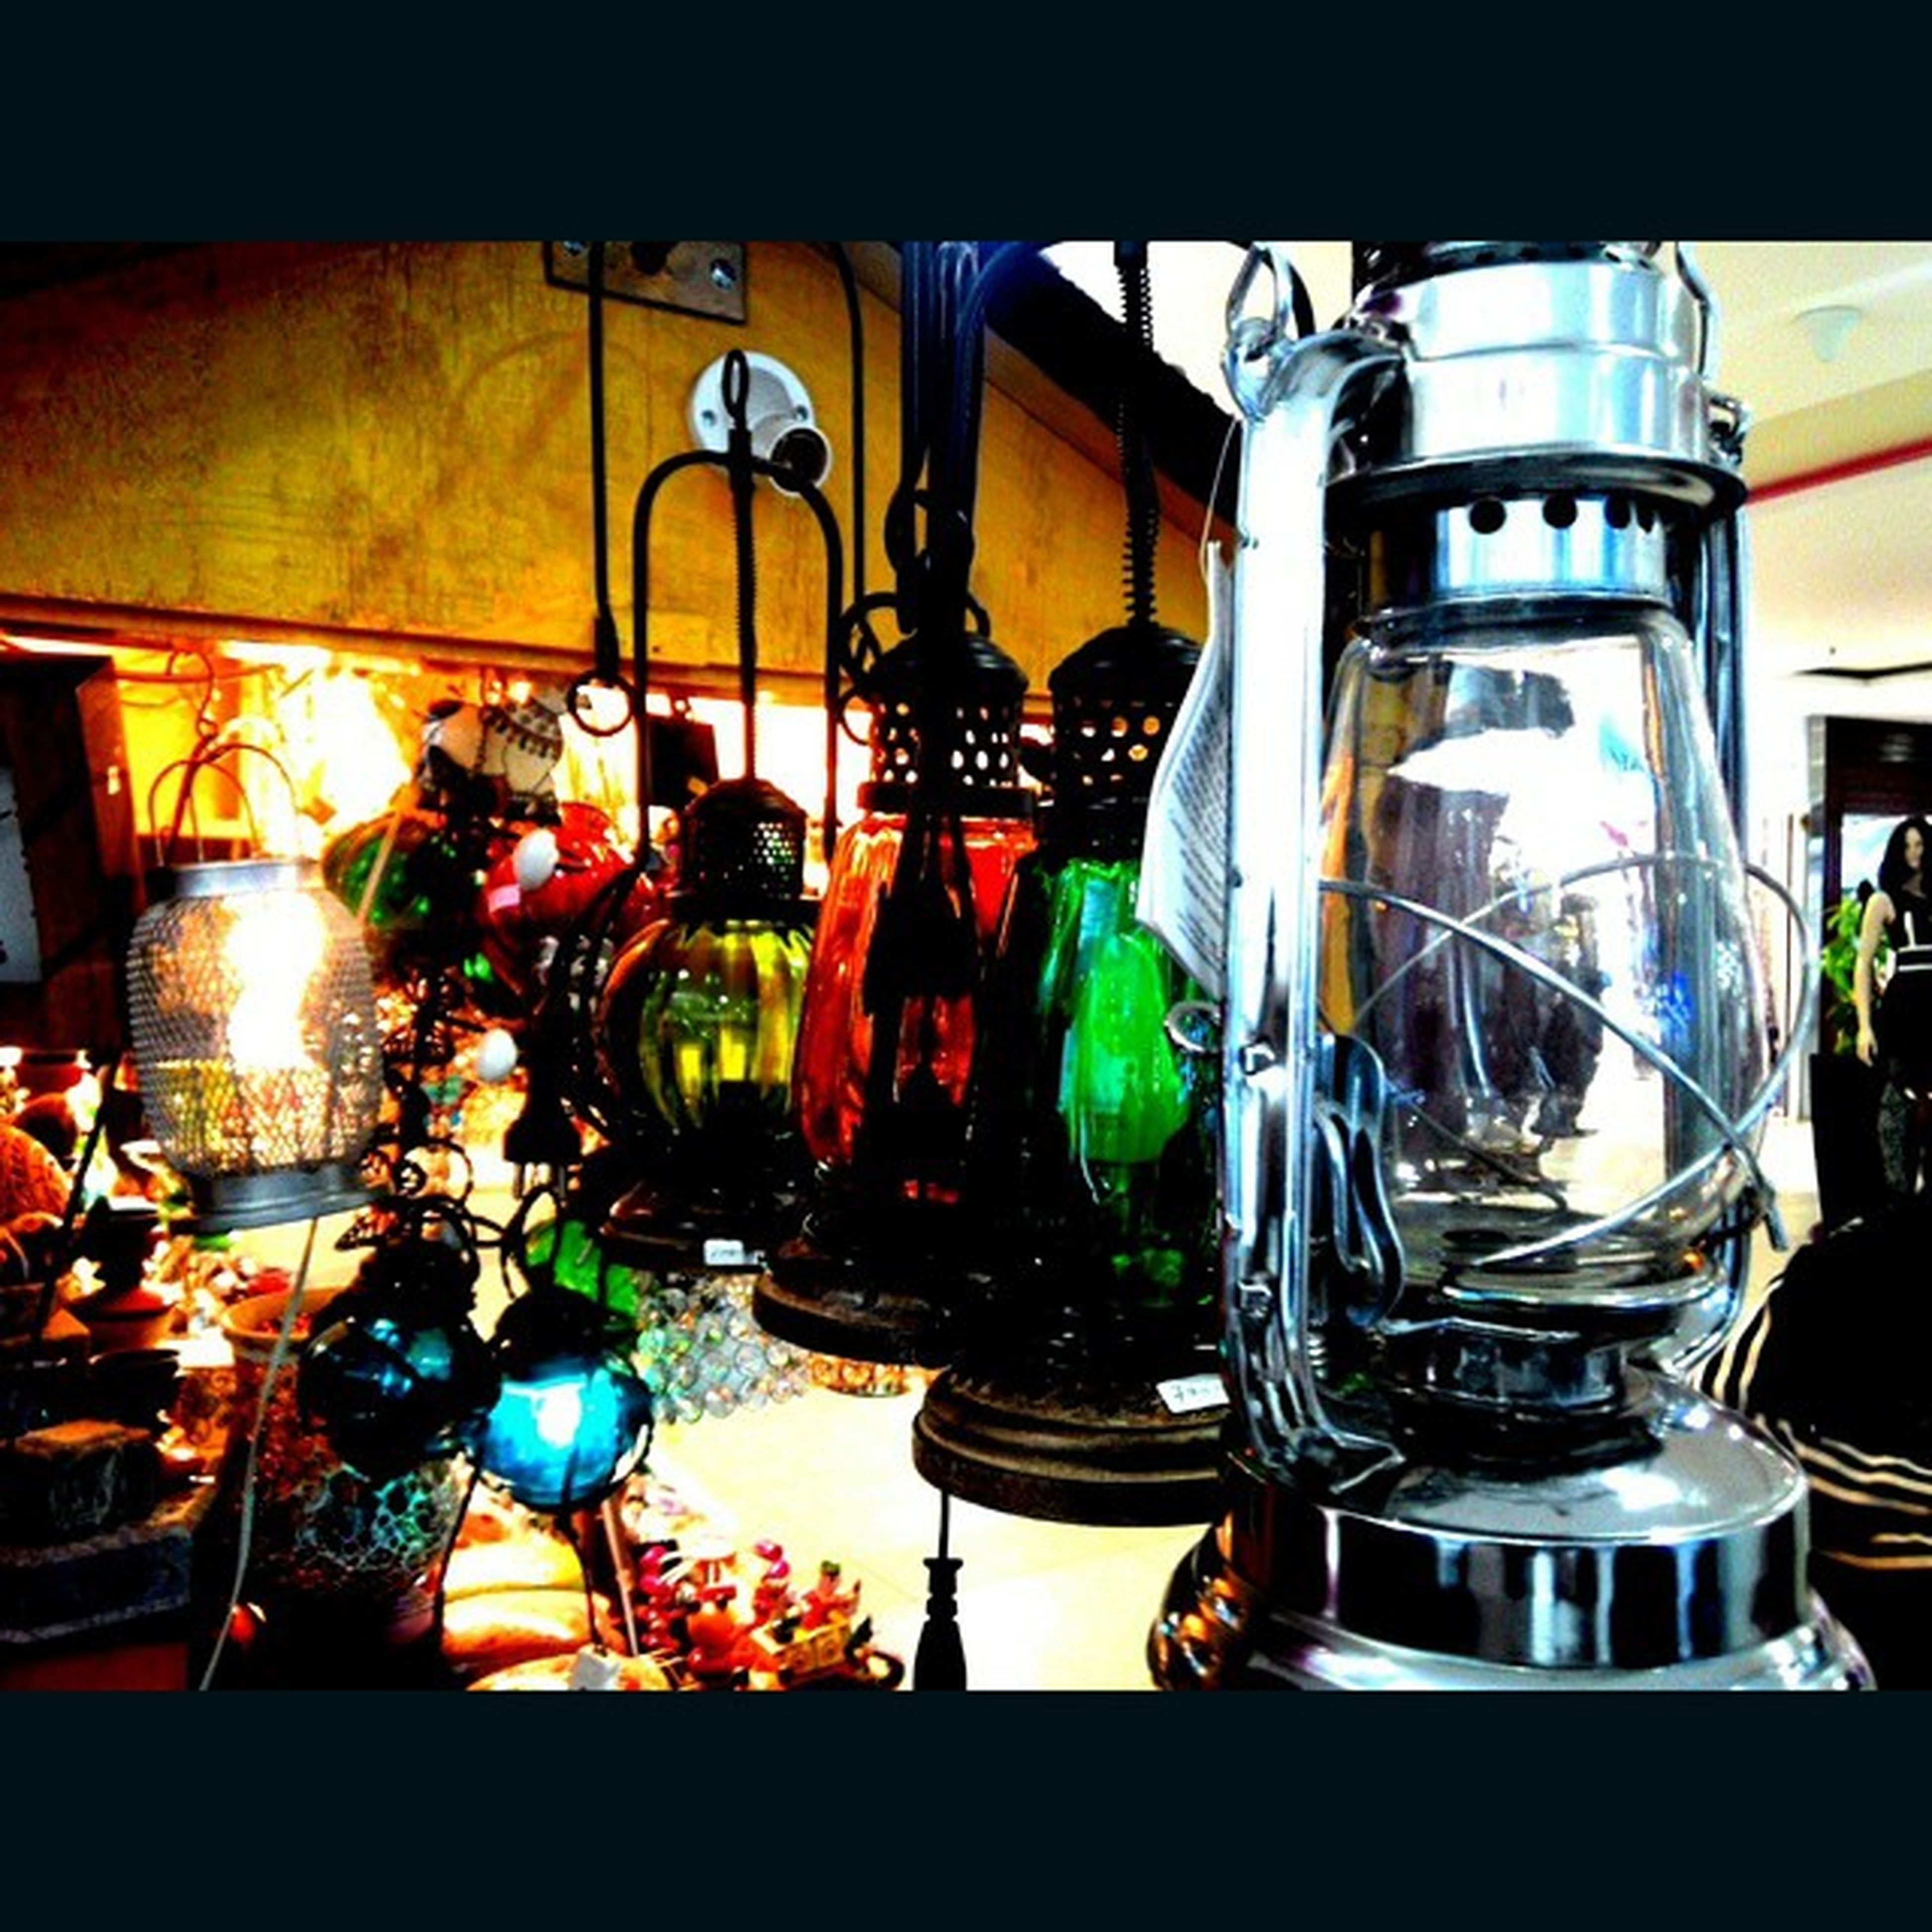 indoors, glass - material, still life, table, arrangement, large group of objects, illuminated, home interior, transparent, variation, shelf, bottle, lighting equipment, restaurant, hanging, no people, wineglass, drinking glass, candle, decoration